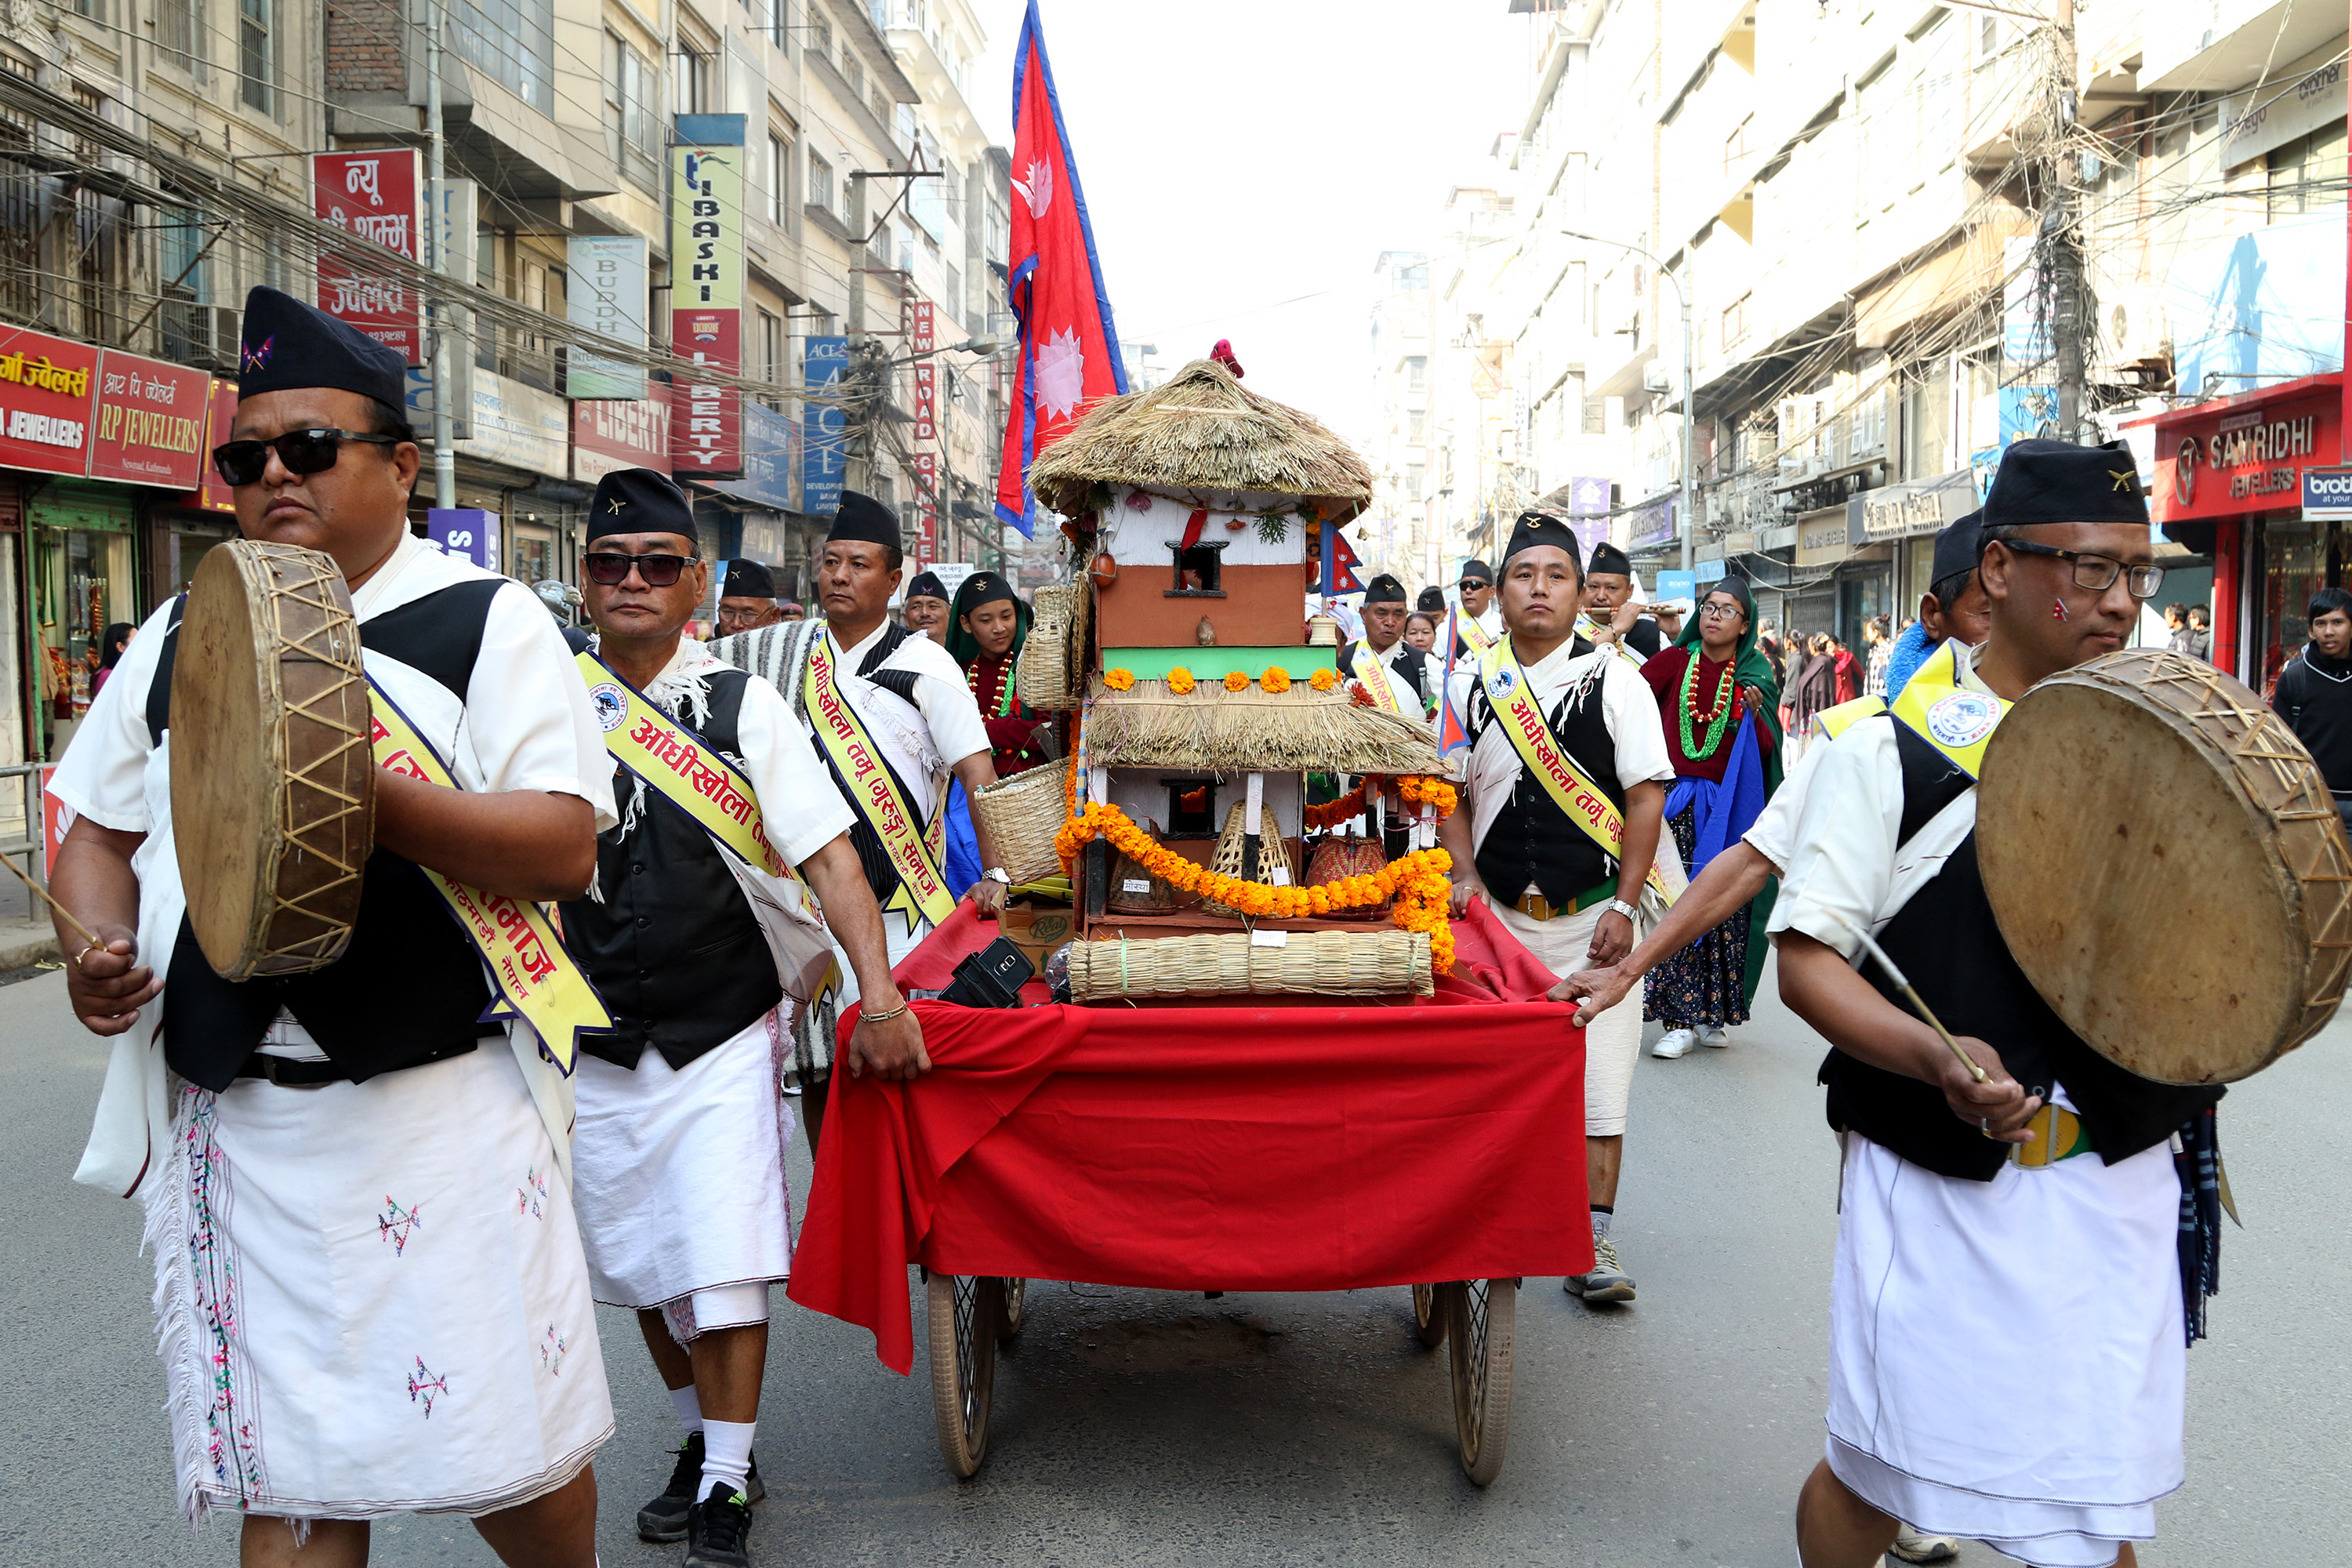 Tamu lhosar celebrations in pictures photo feature the various programmes including rallies sports and traditional dances among others were oragnised in the capital to mark the day m4hsunfo